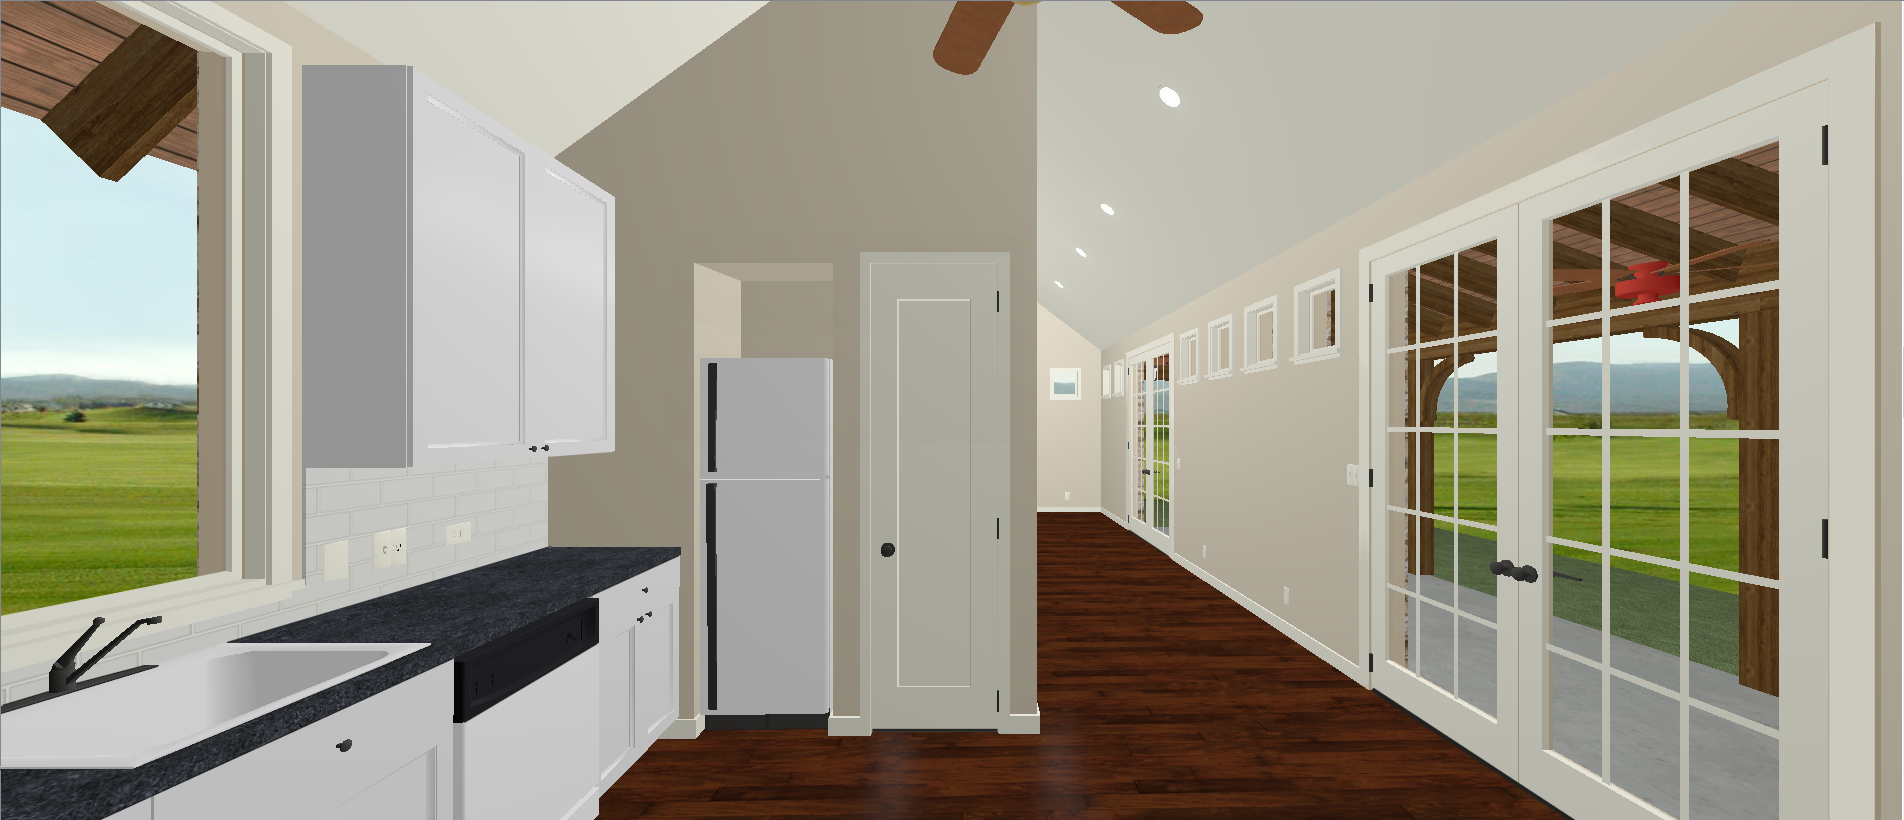 texas tiny homes plan 579b